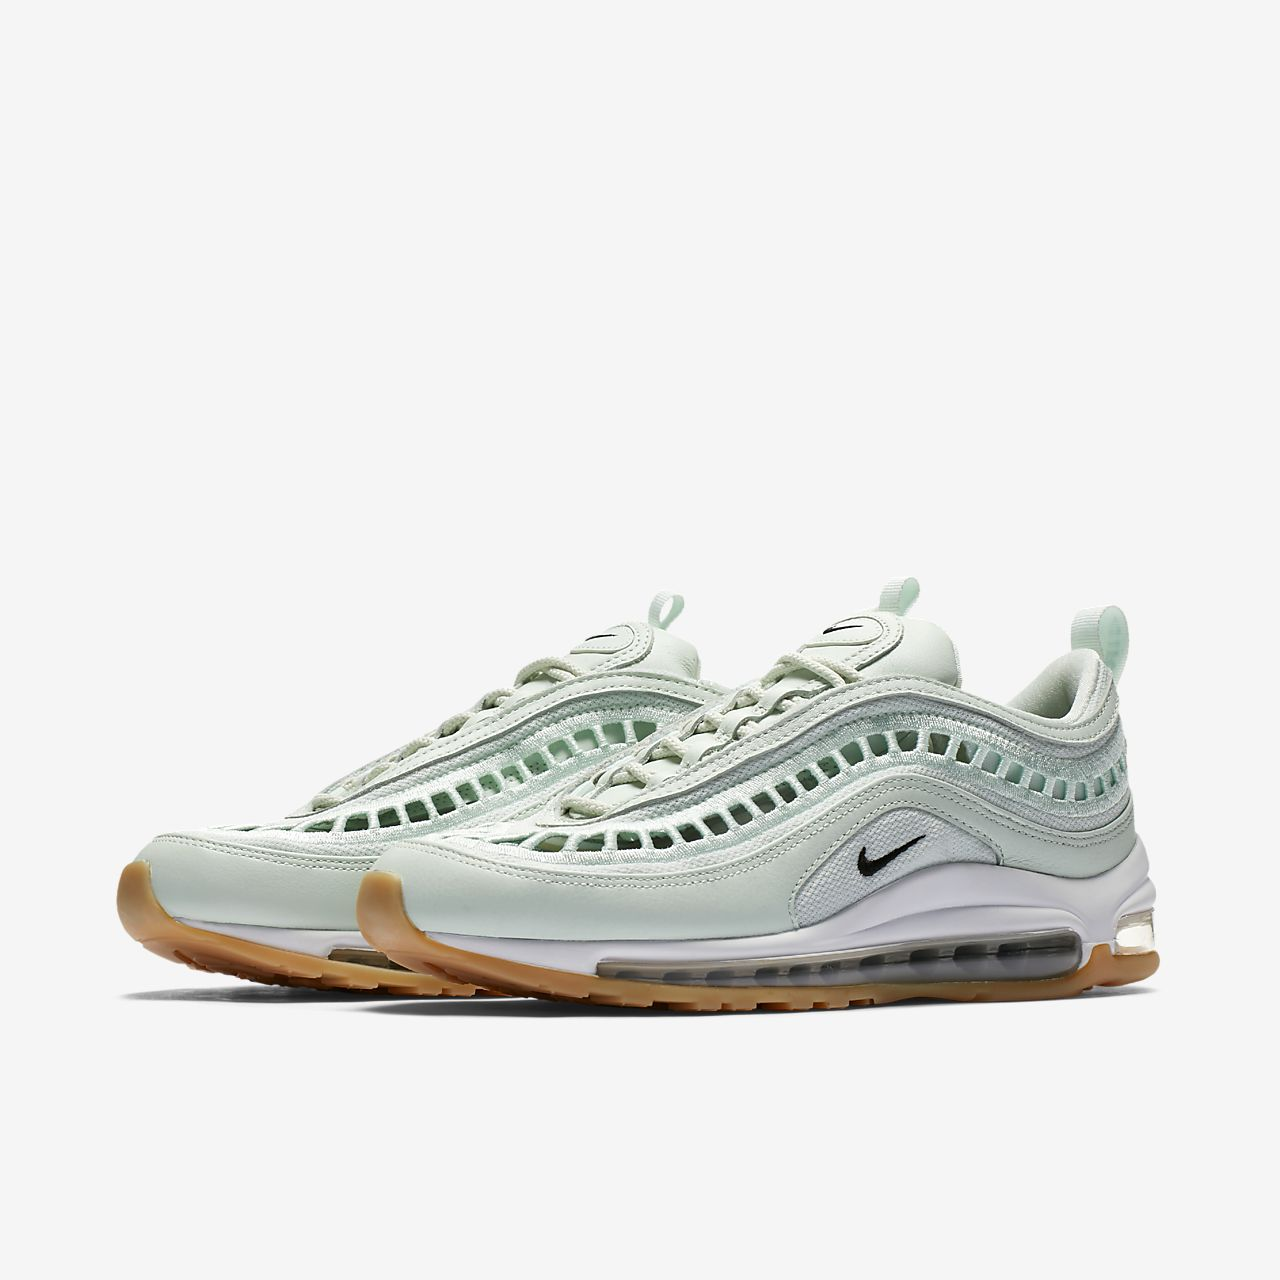 Nike Air Max 97 Ultra JD Sports jdsports.co.uk�